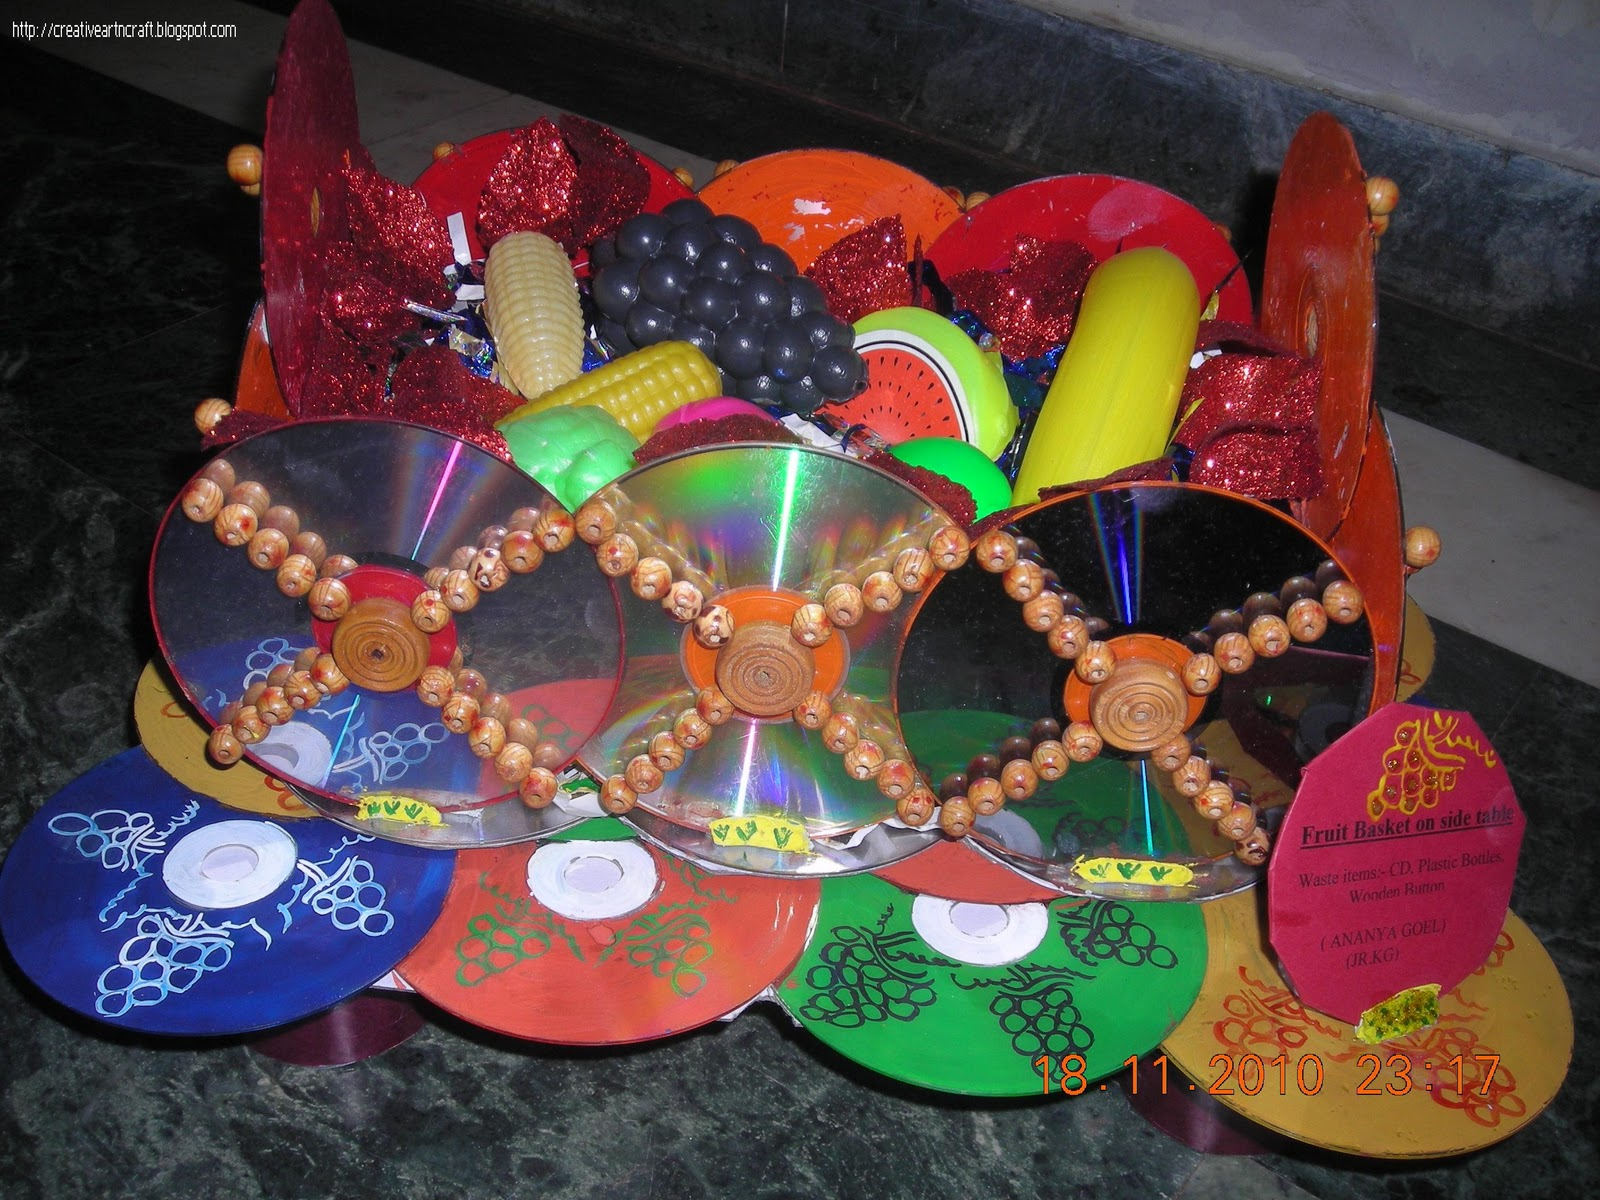 Anu 39 s art and crafts best out of waste fruit basket with for Things made from waste